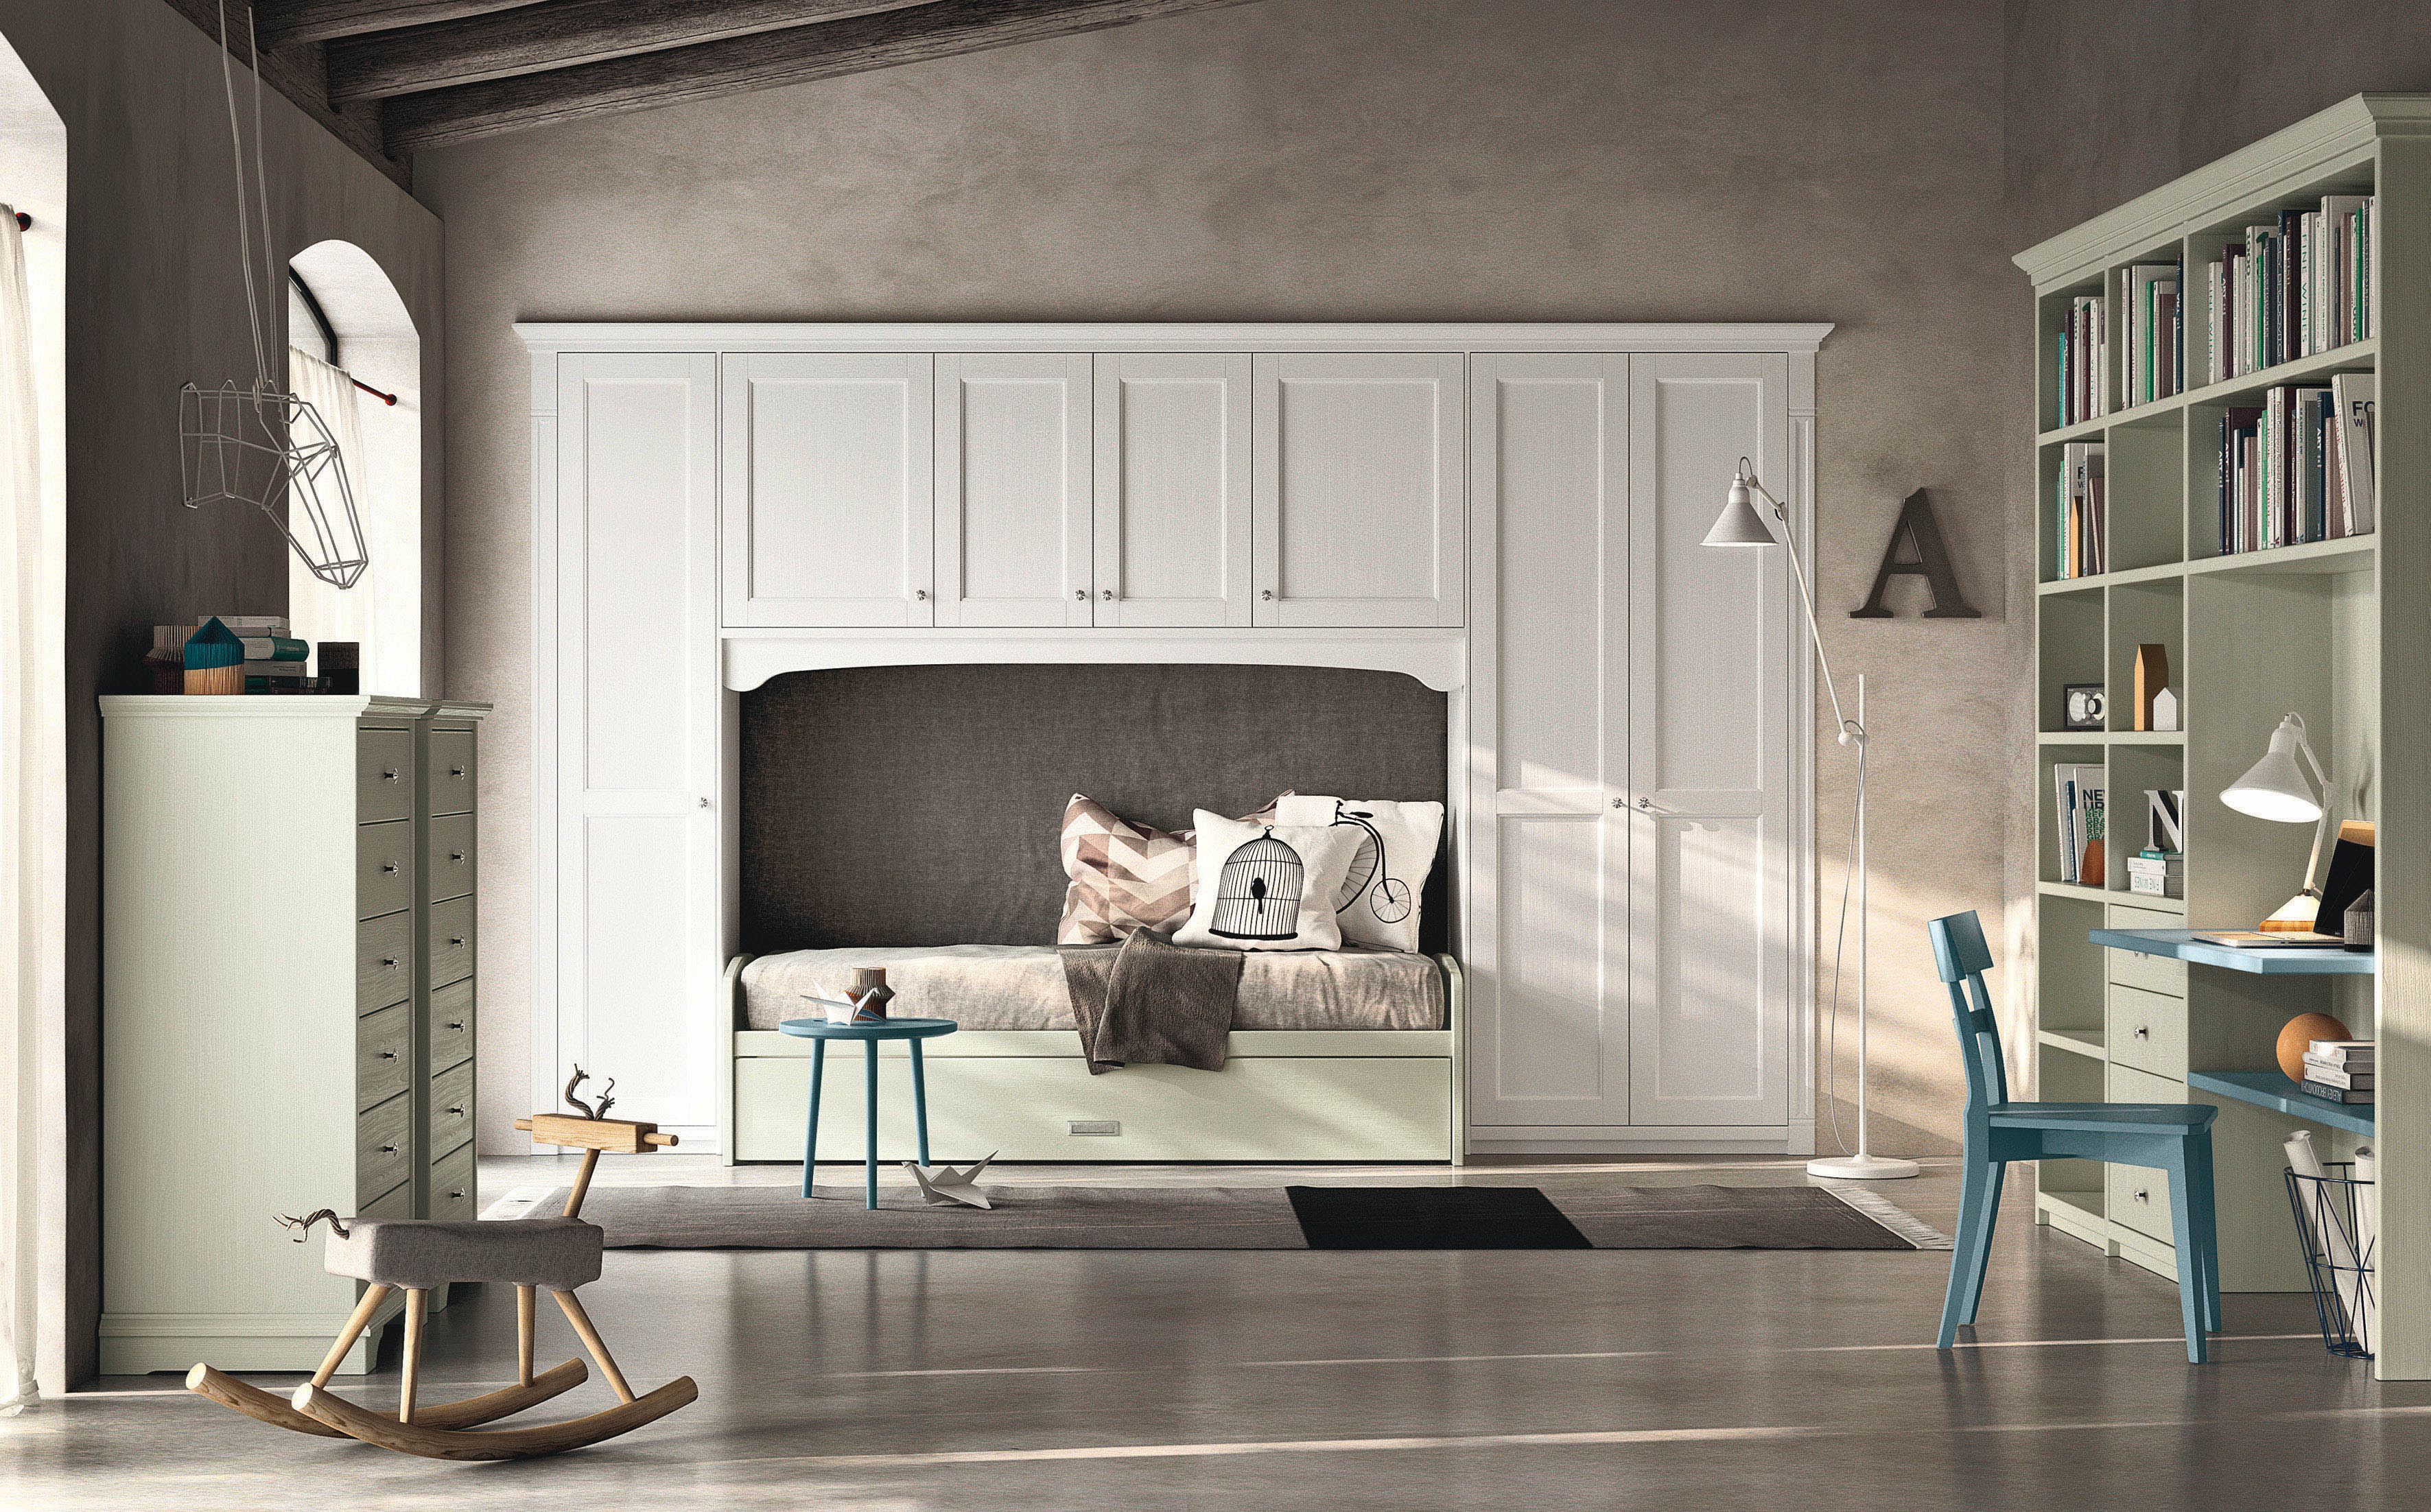 Camerette in stile country (home eng)